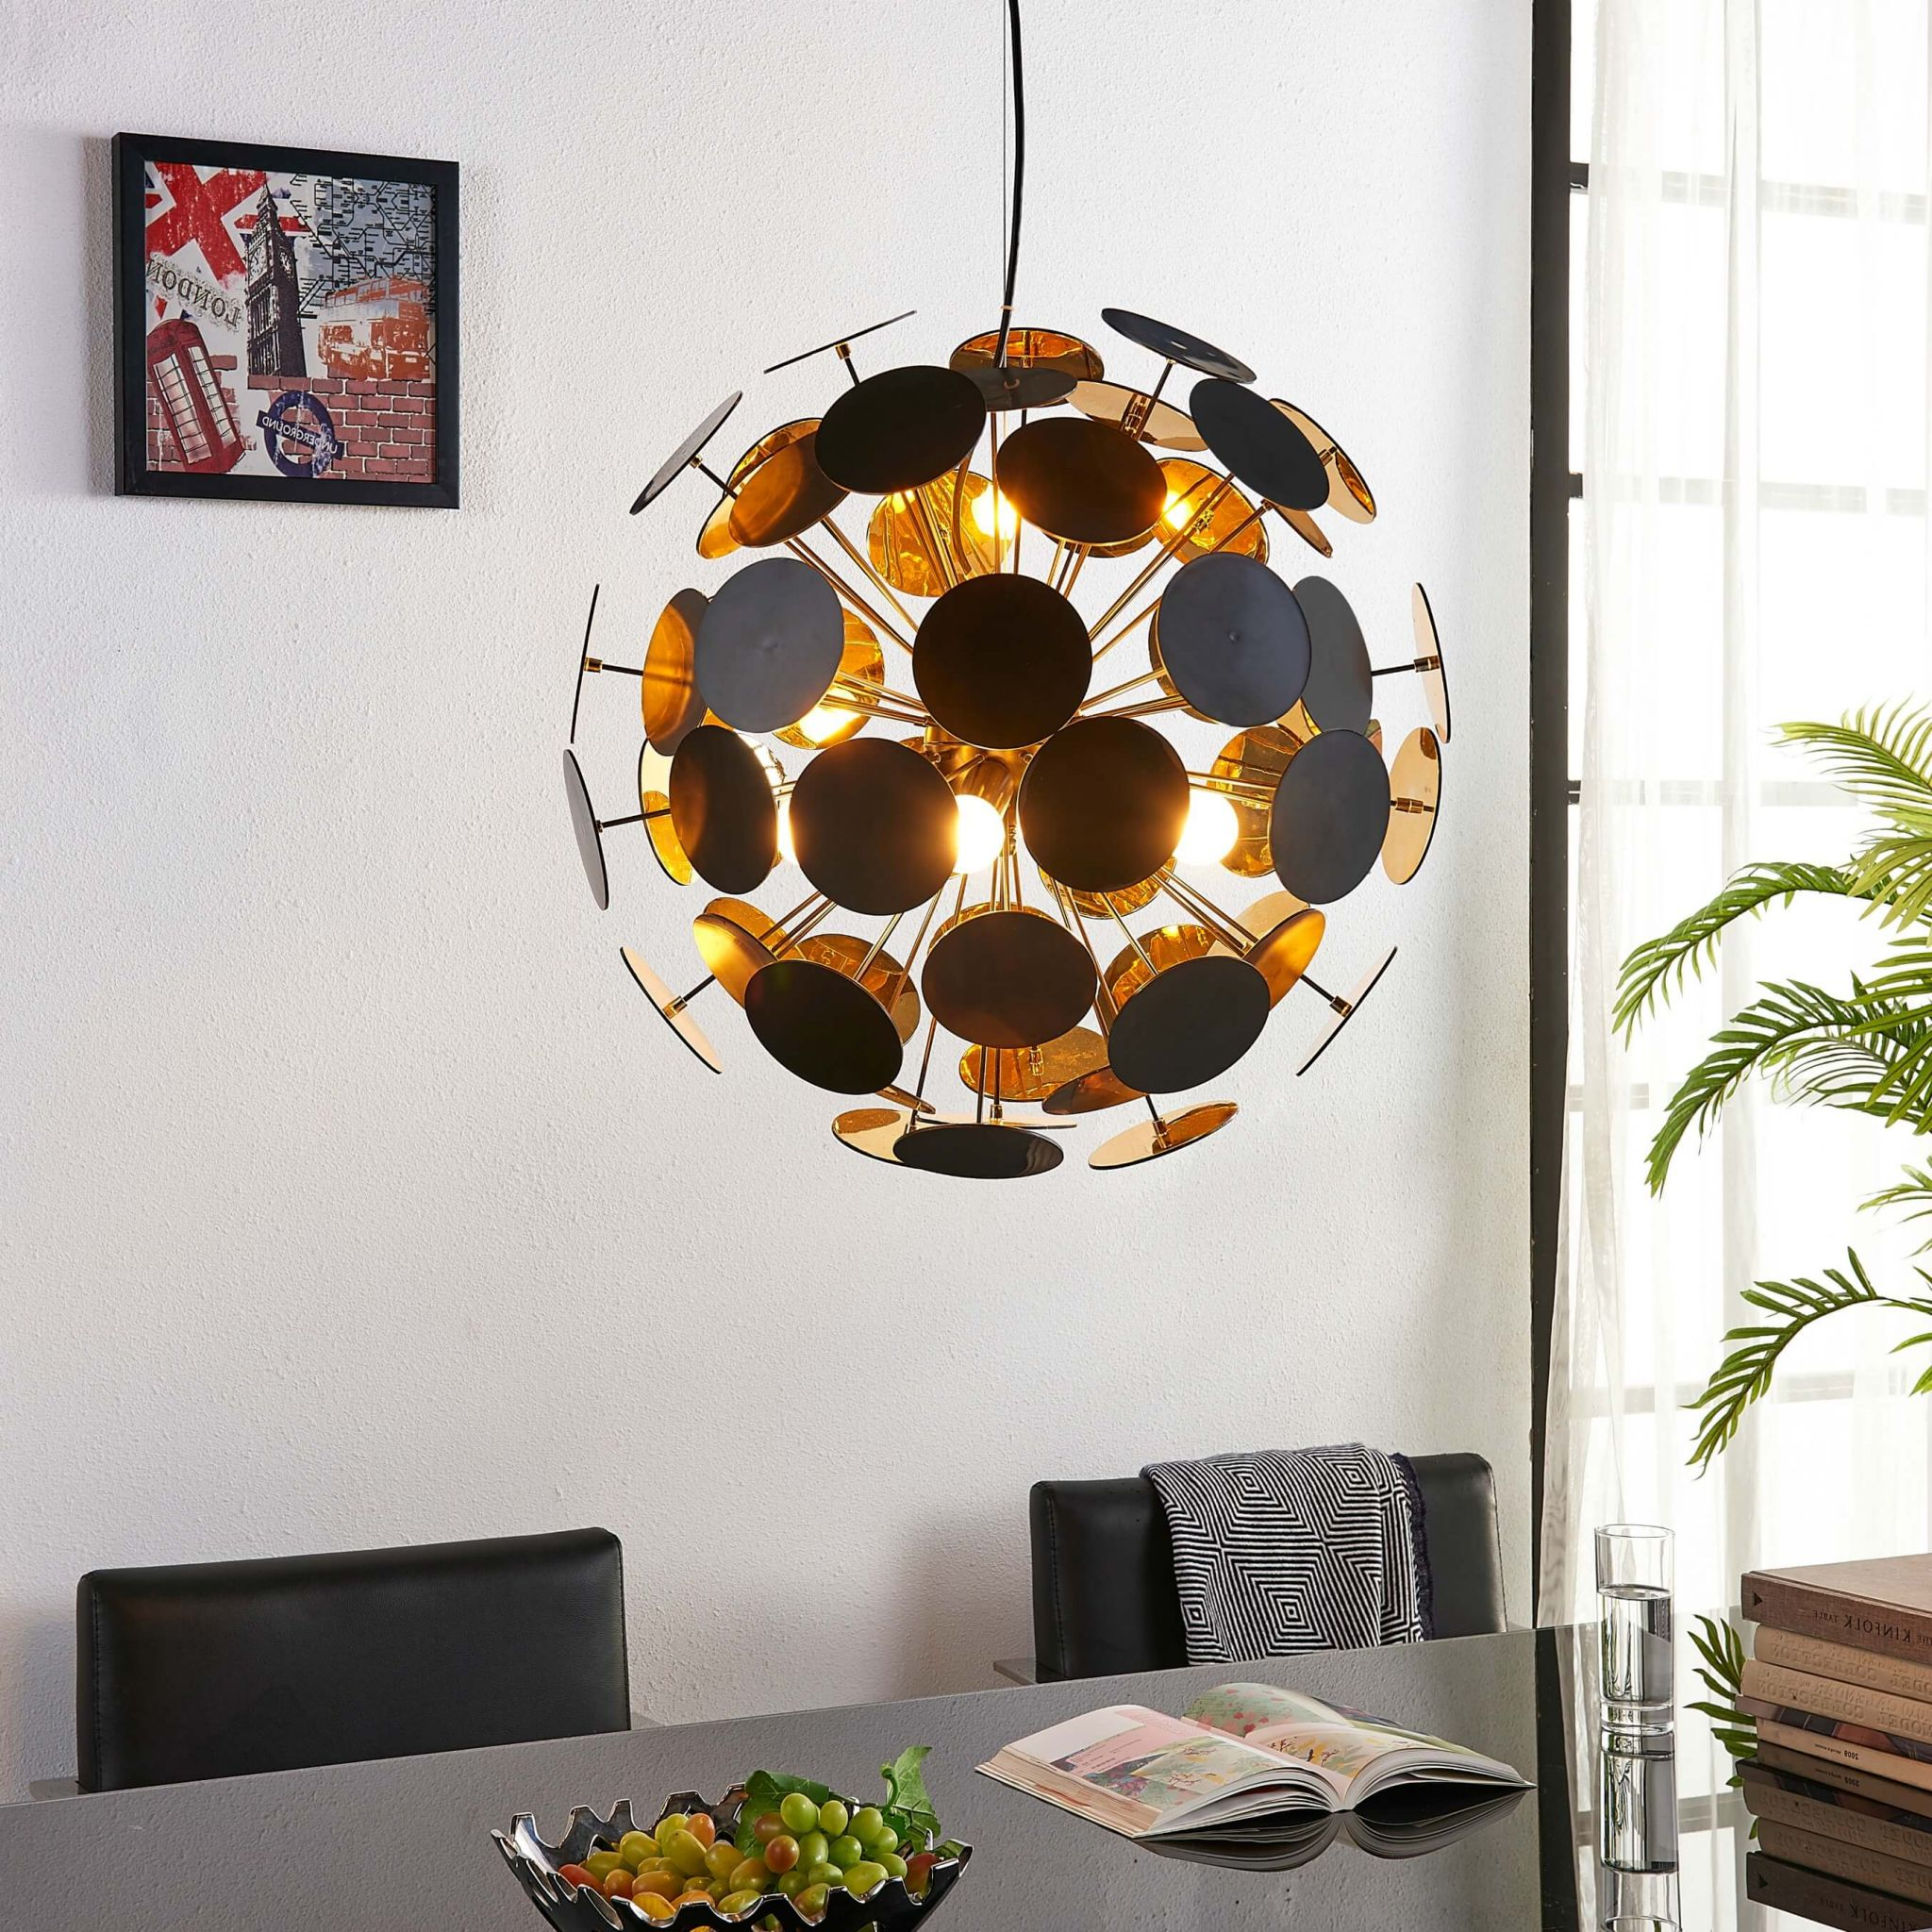 make your student accommodation feel like home - globe pendant light